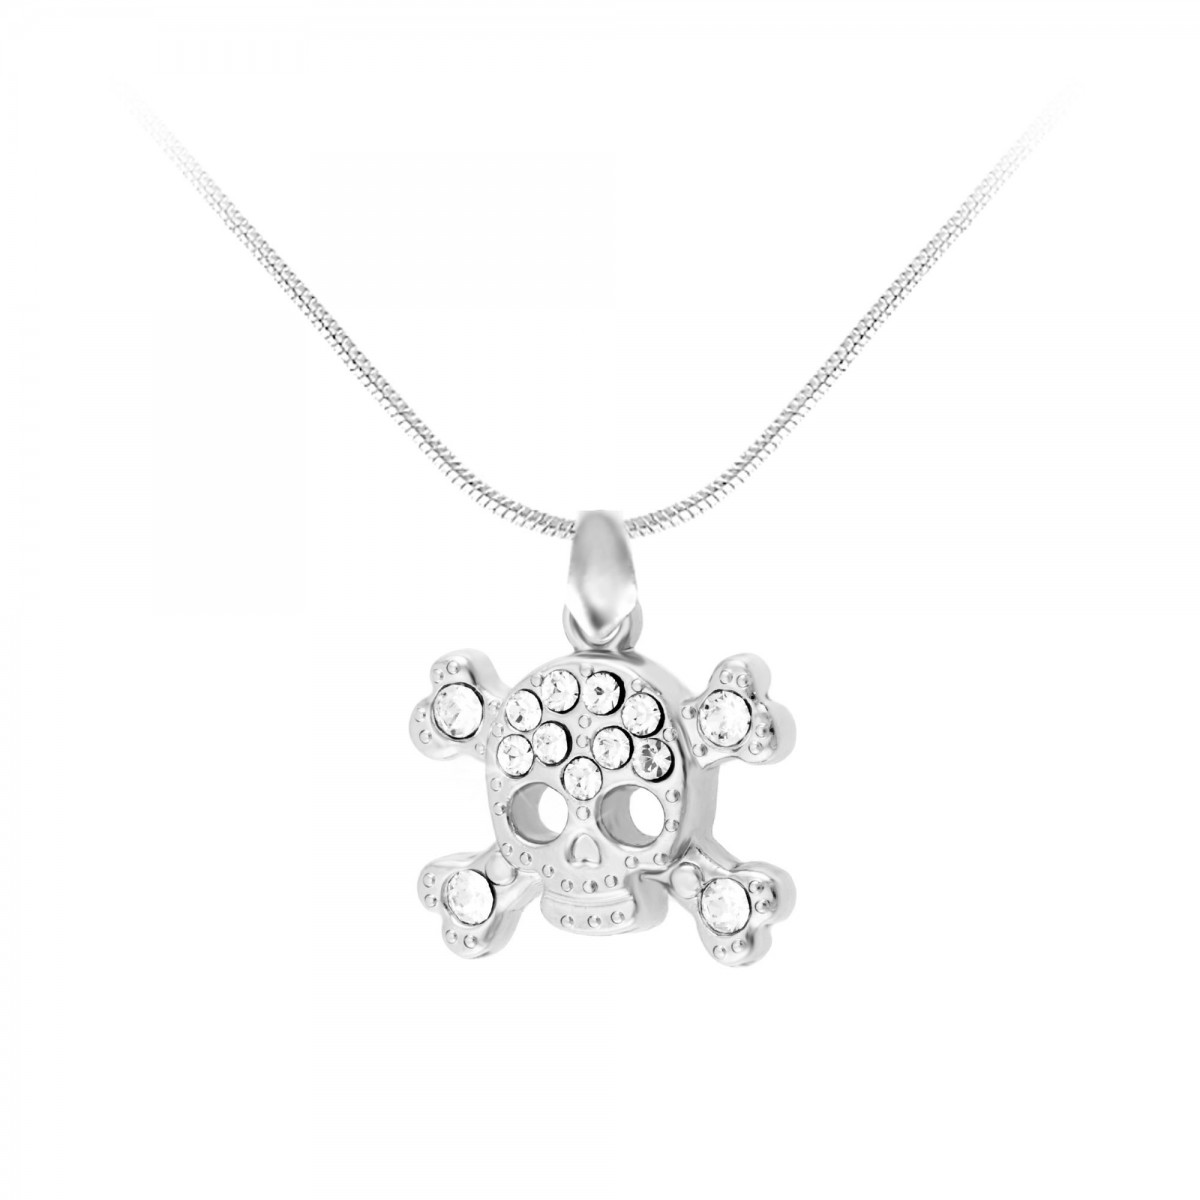 Collier tête de mort So Charm made with crystals from Swarovski